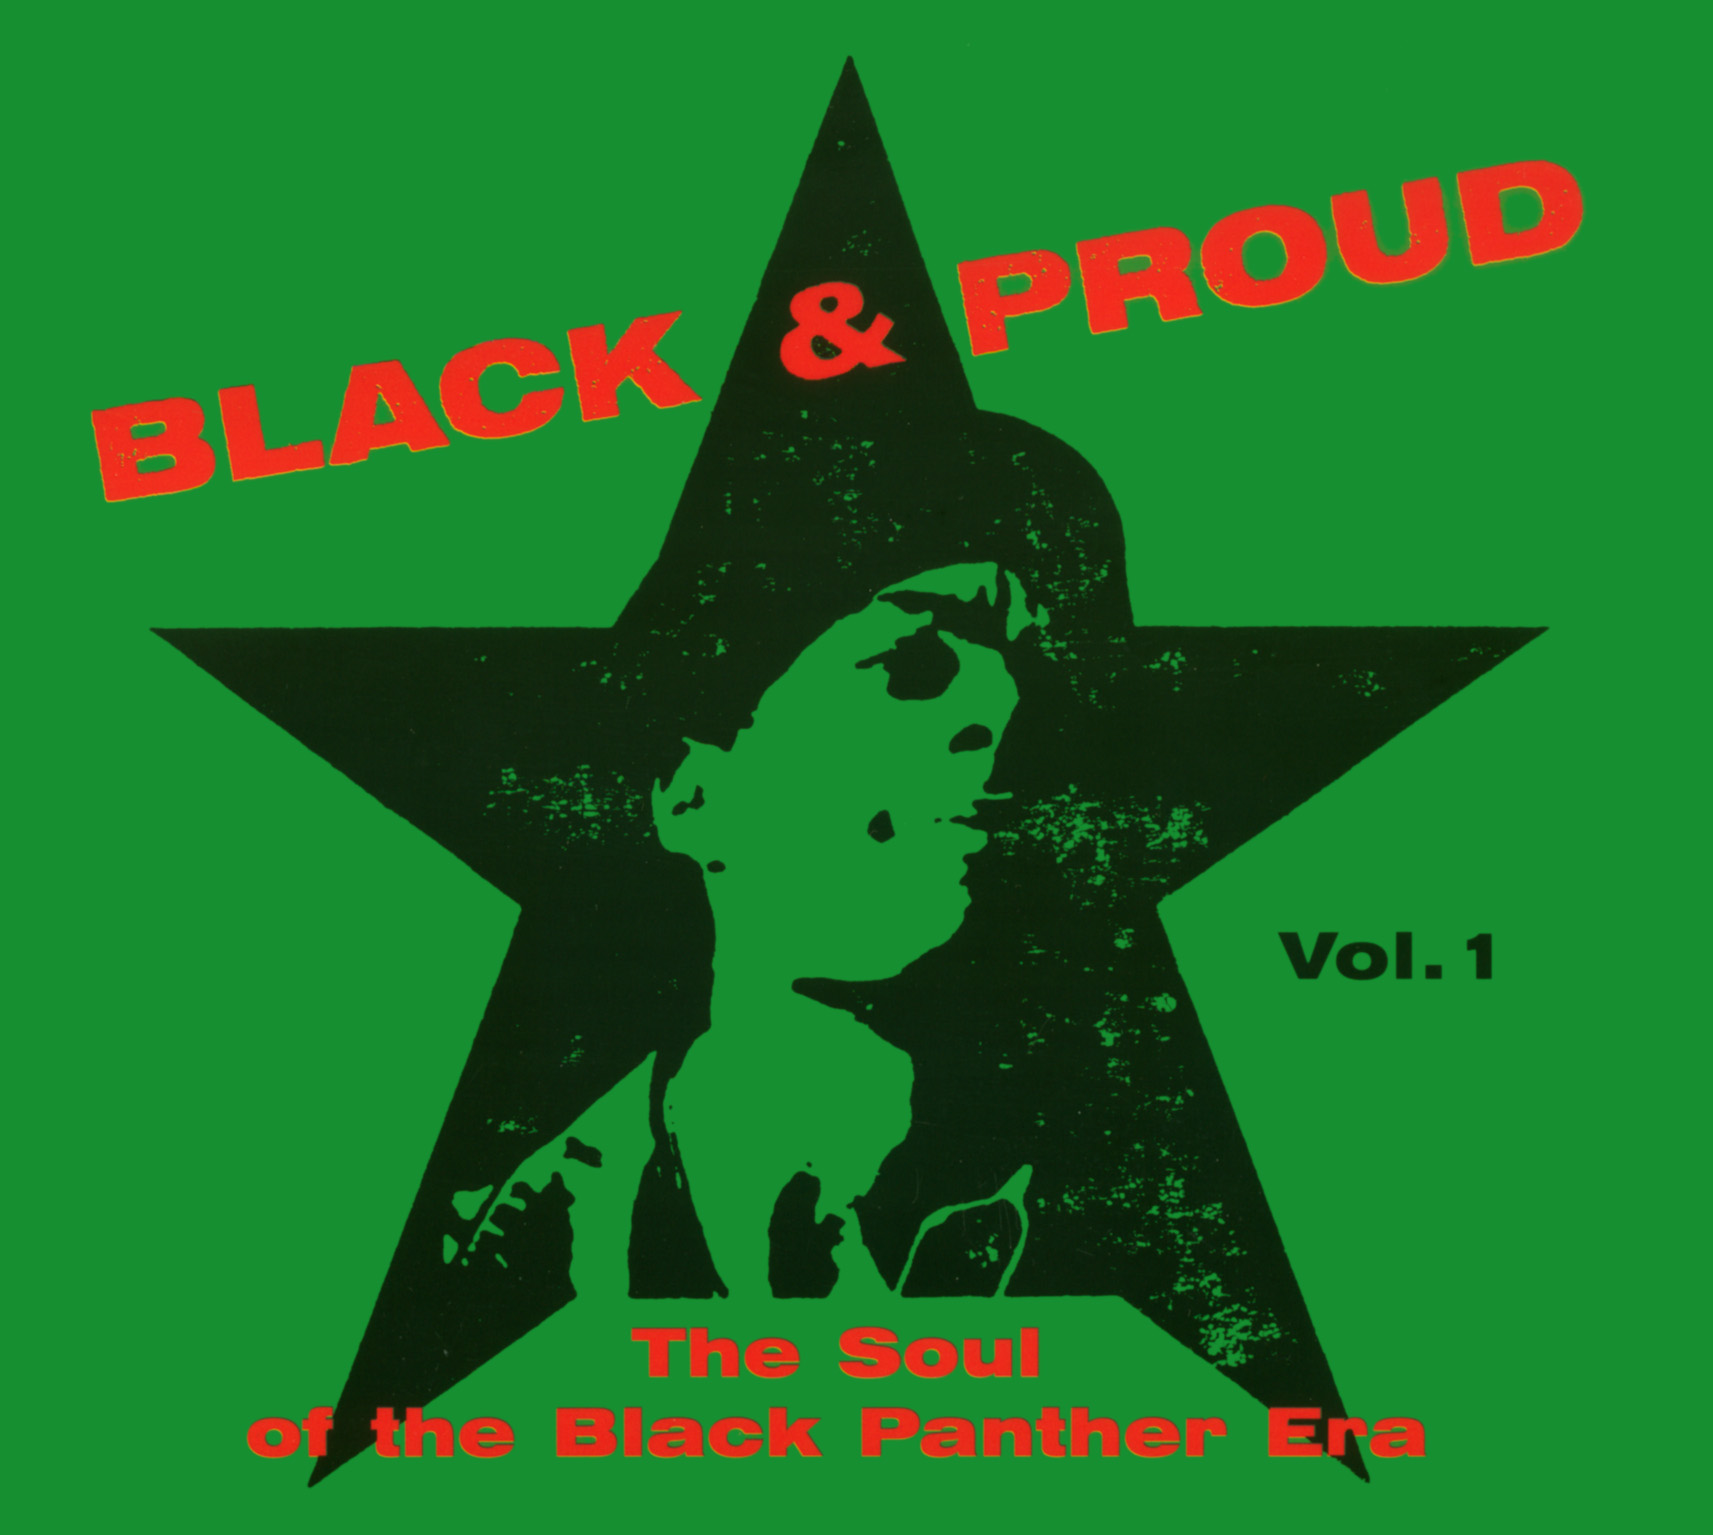 Black & Proud Vol. I - The Soul Of the Black Panther Era